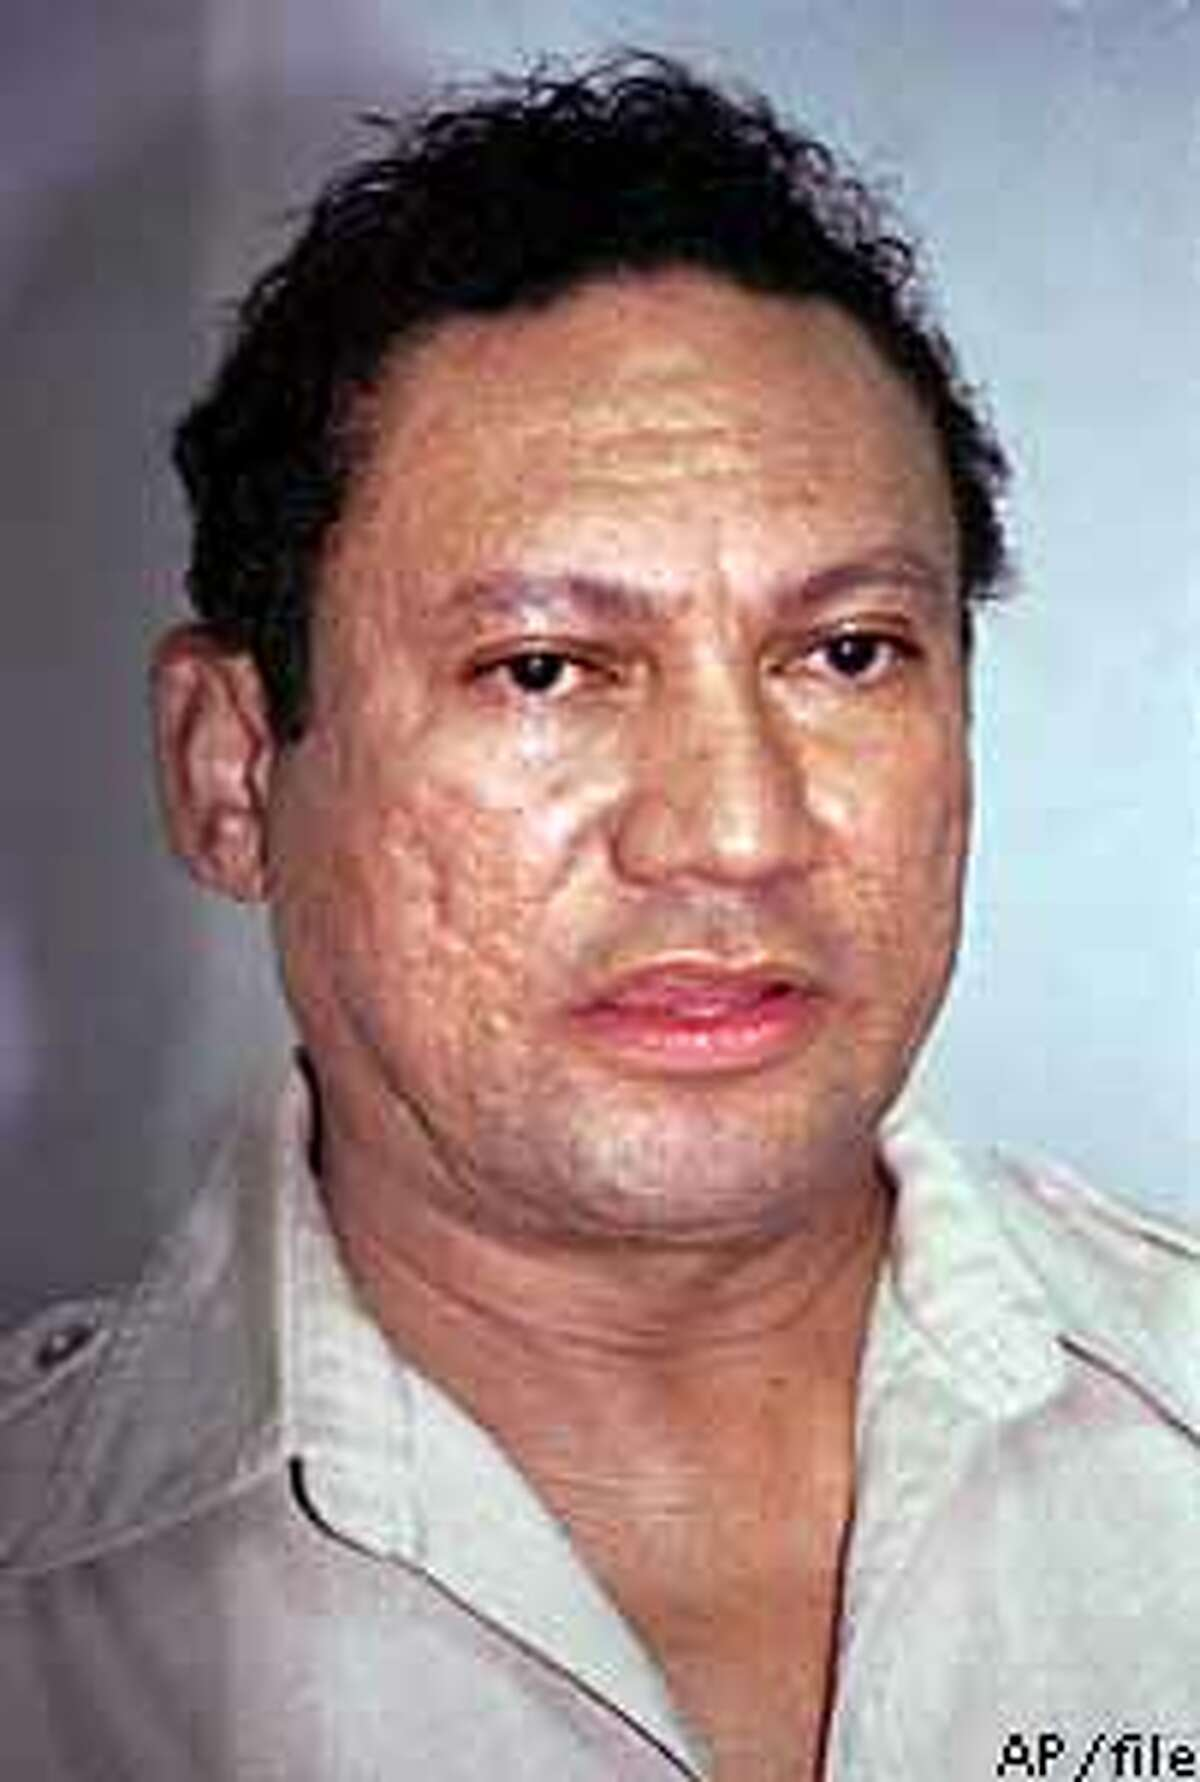 FILE -- Deposed Panamanian leader Manuel Noriega is shown in this undated photo. A former member of the Cali cocaine cartel testified in Miami Monday, March 4, 1996, that he paid a Panamanian smuggler $1.25 milion to testify against Noriega, convicted on drug charges in 1992. Noriega's attorneys are seeking a new trial, charging that prosecutors were aware of the secret deal but kept it secret from the judge, the defense and the jury. (AP Photo/file)